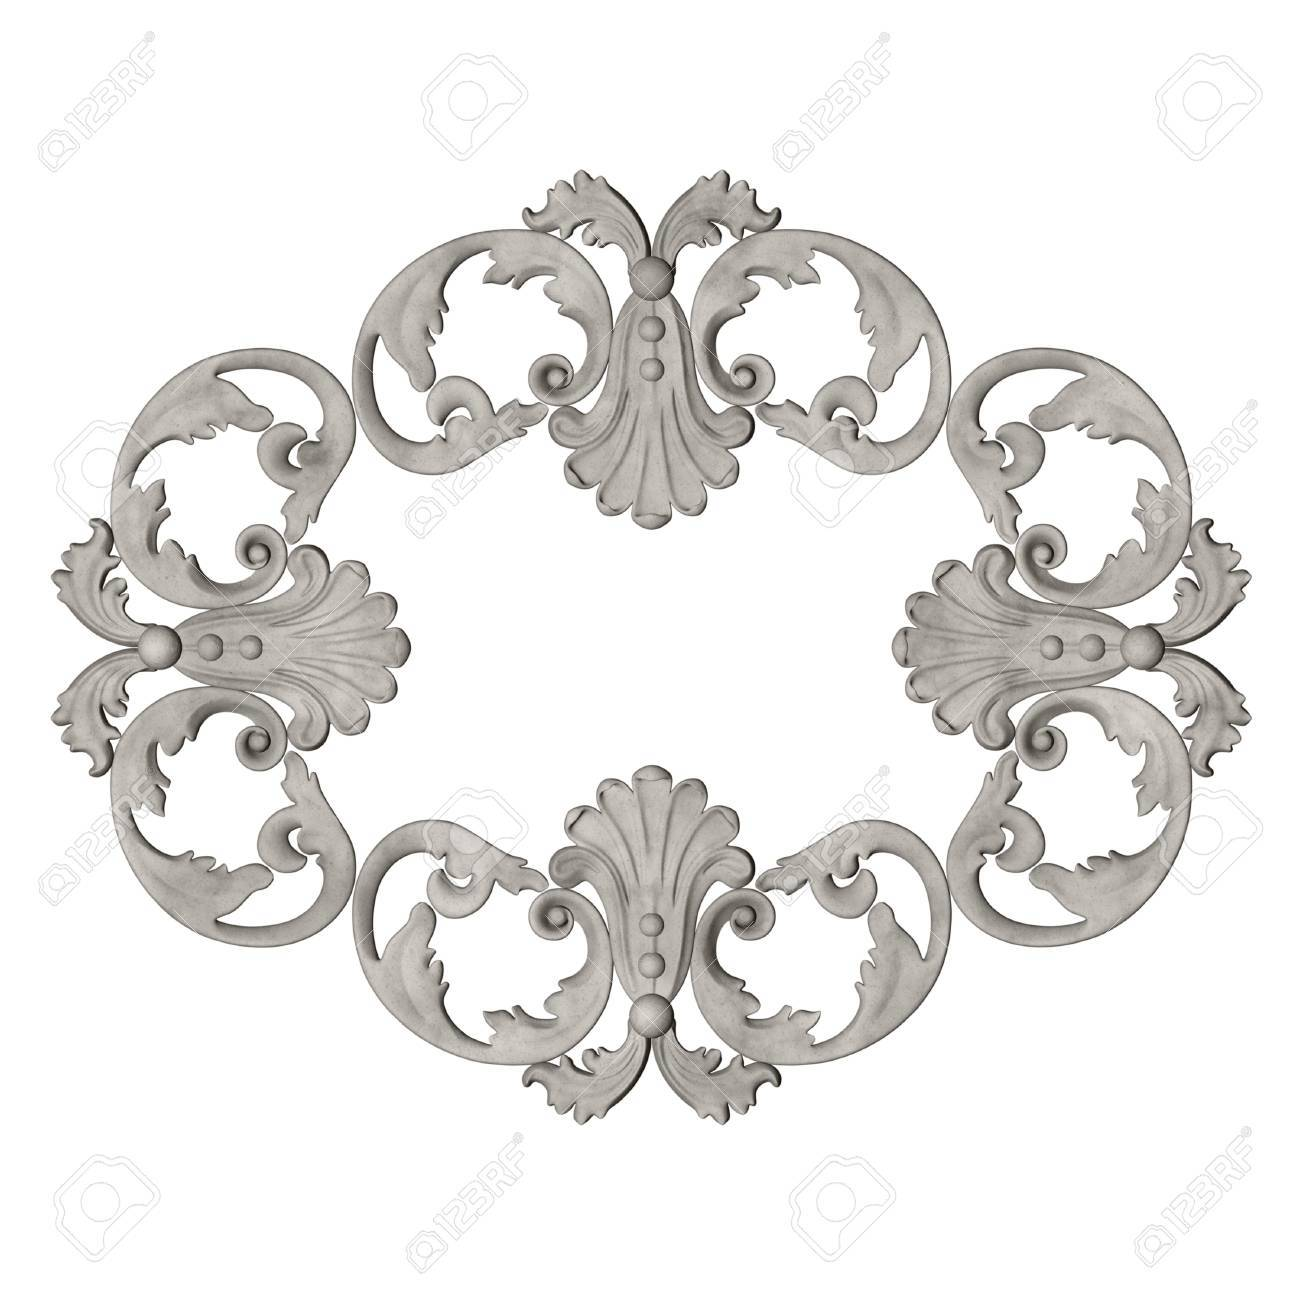 3d Frame The Sculptural Form On A White Background Stock Photo 1300x1300